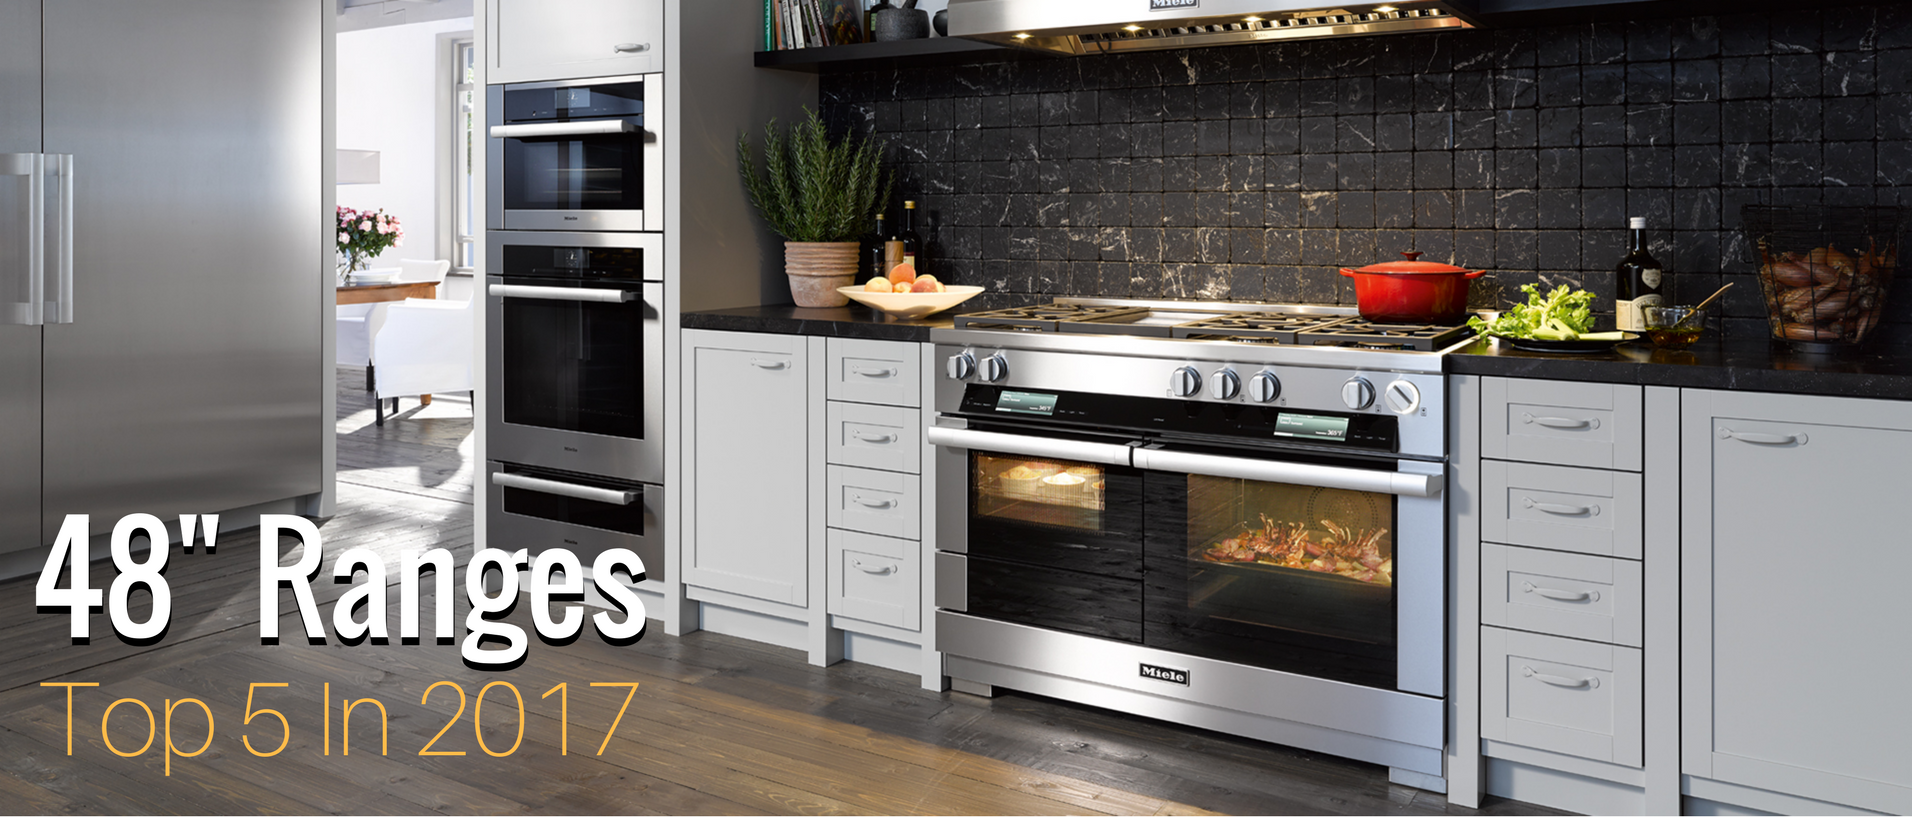 How to choose high-quality and convenient kitchen appliances